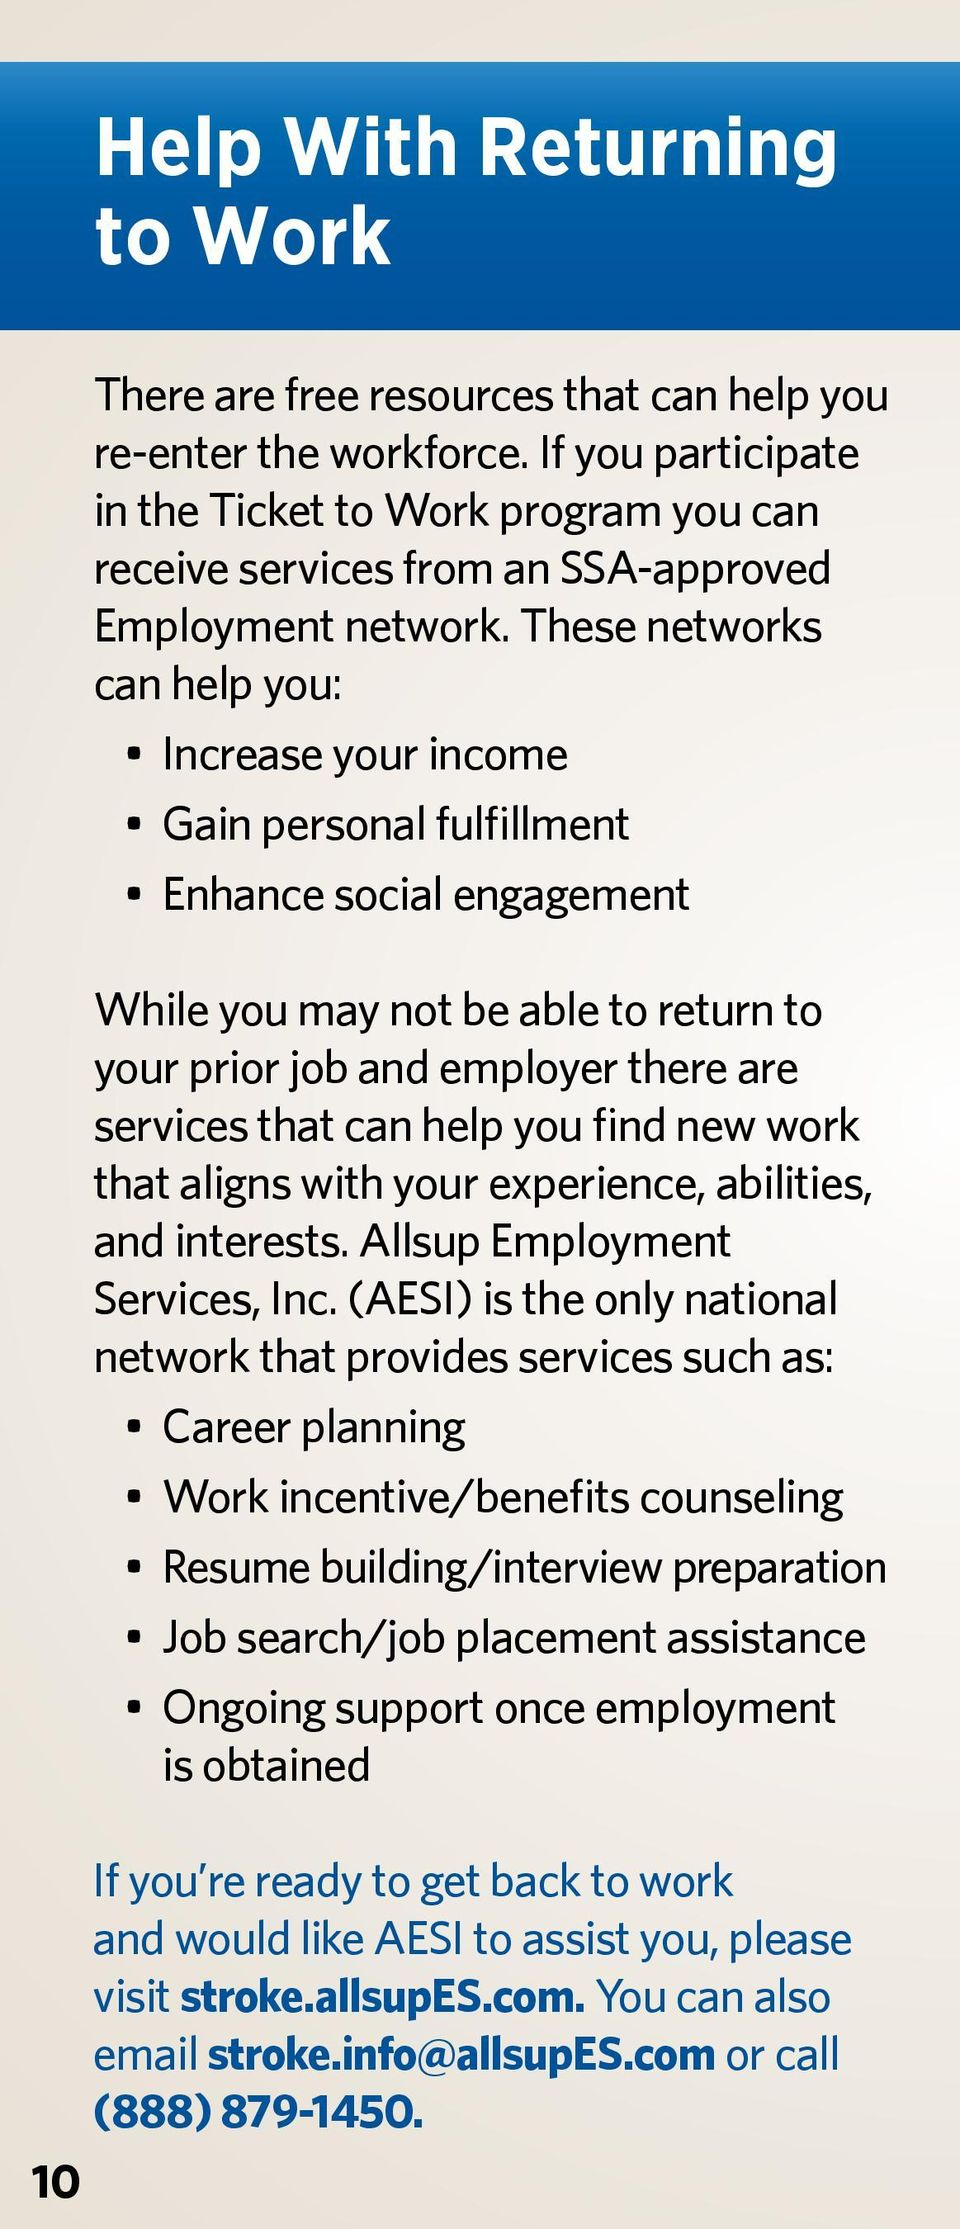 These networks can help you: Increase your income Gain personal fulfillment Enhance social engagement While you may not be able to return to your prior job and employer there are services that can